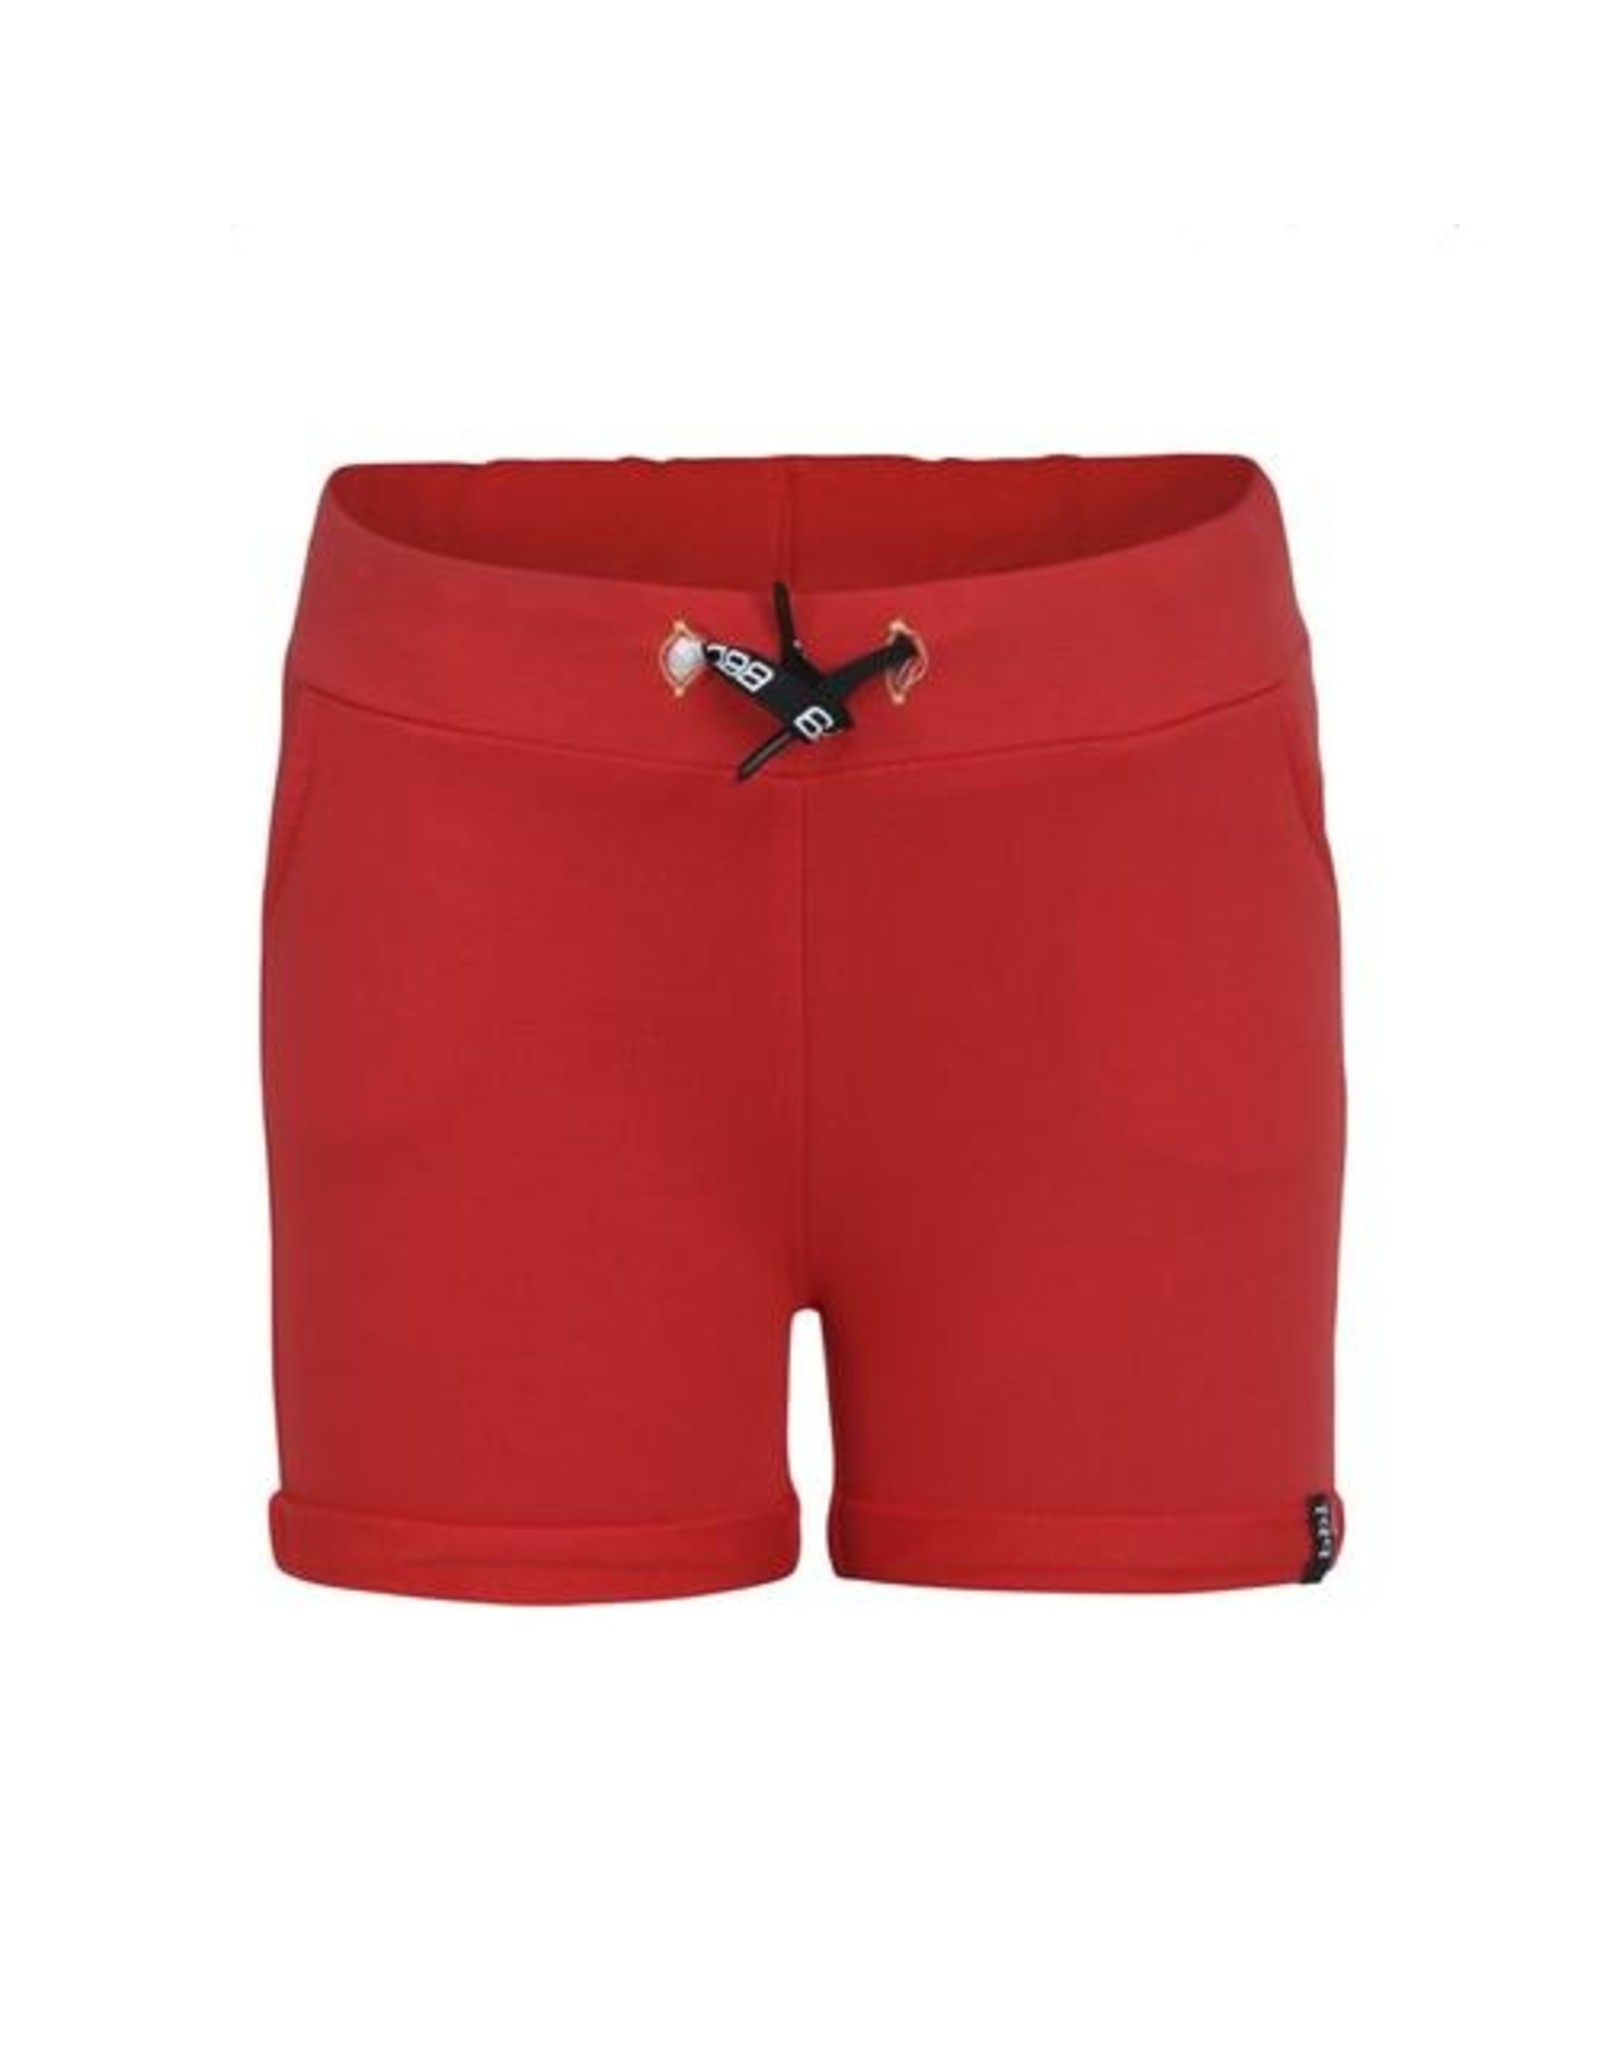 Beebielove Short Red, RED